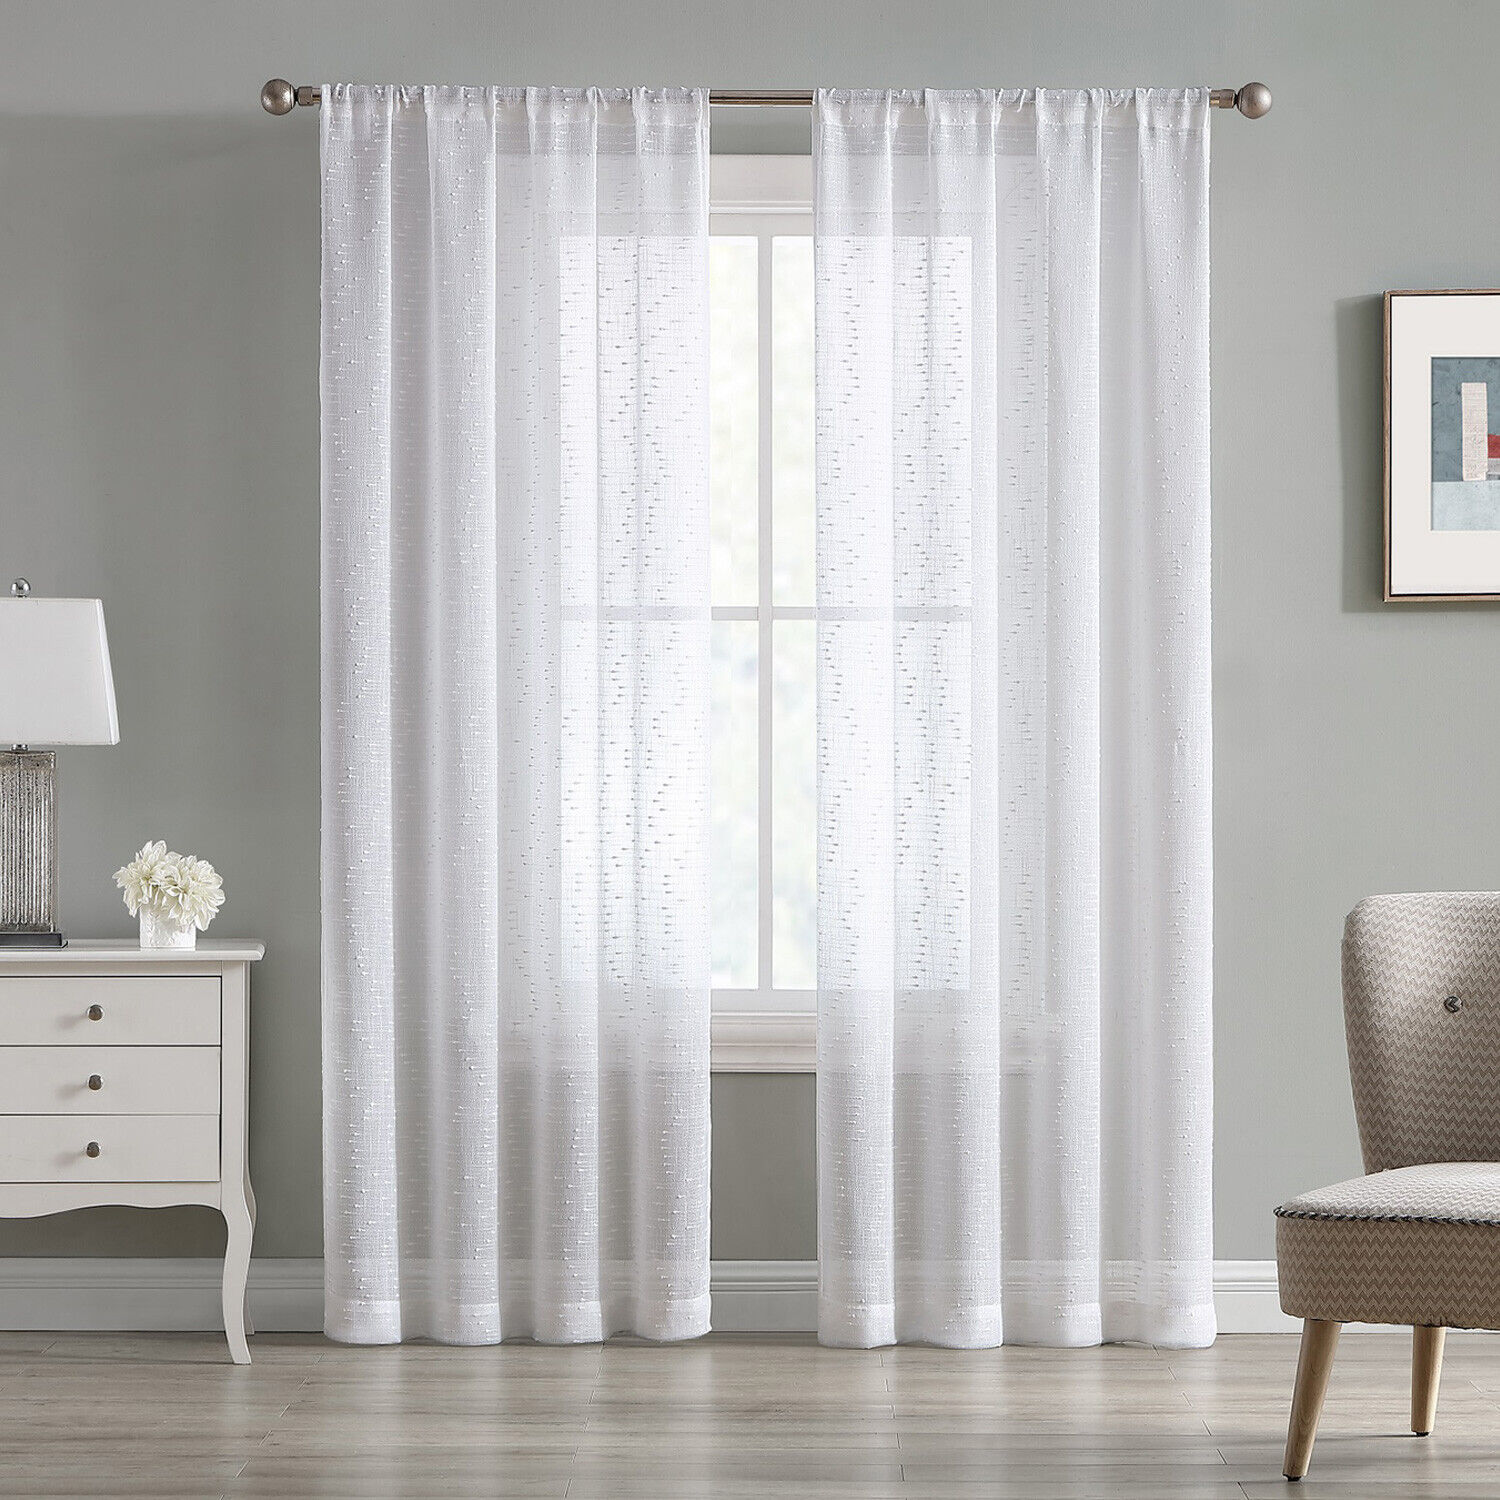 84″ Sheer White Textured 2-Piece Window Curtains Rod Pocket Drapes Panel Pair Curtains & Drapes